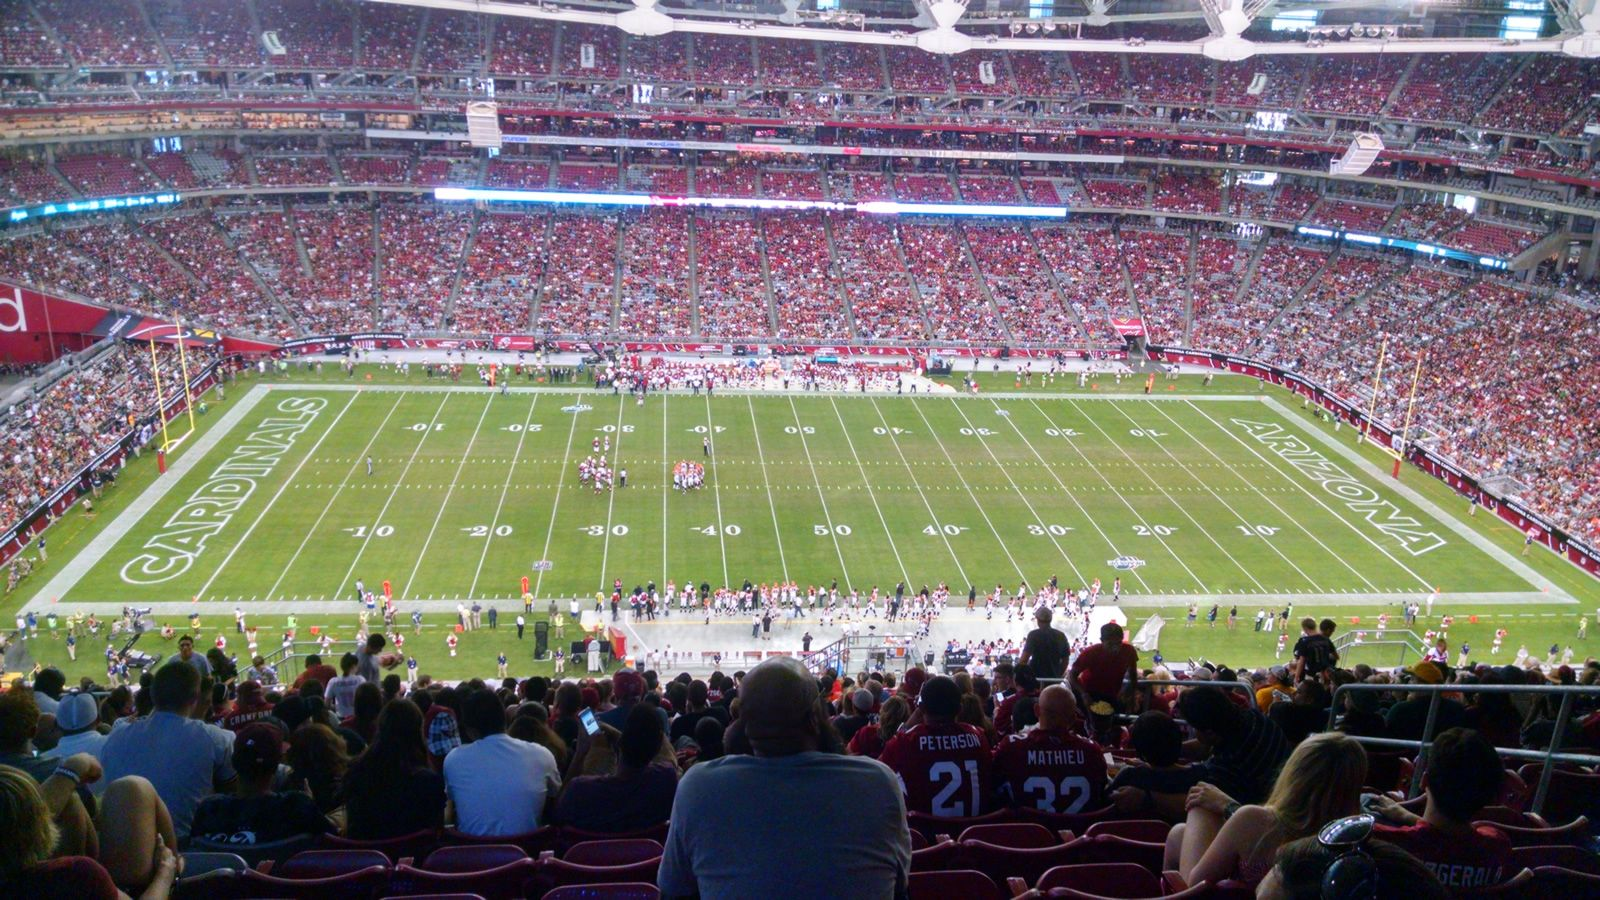 Arizona Cardinals Seat View for University of Phoenix Stadium Section 445, Row 23, Seat 9